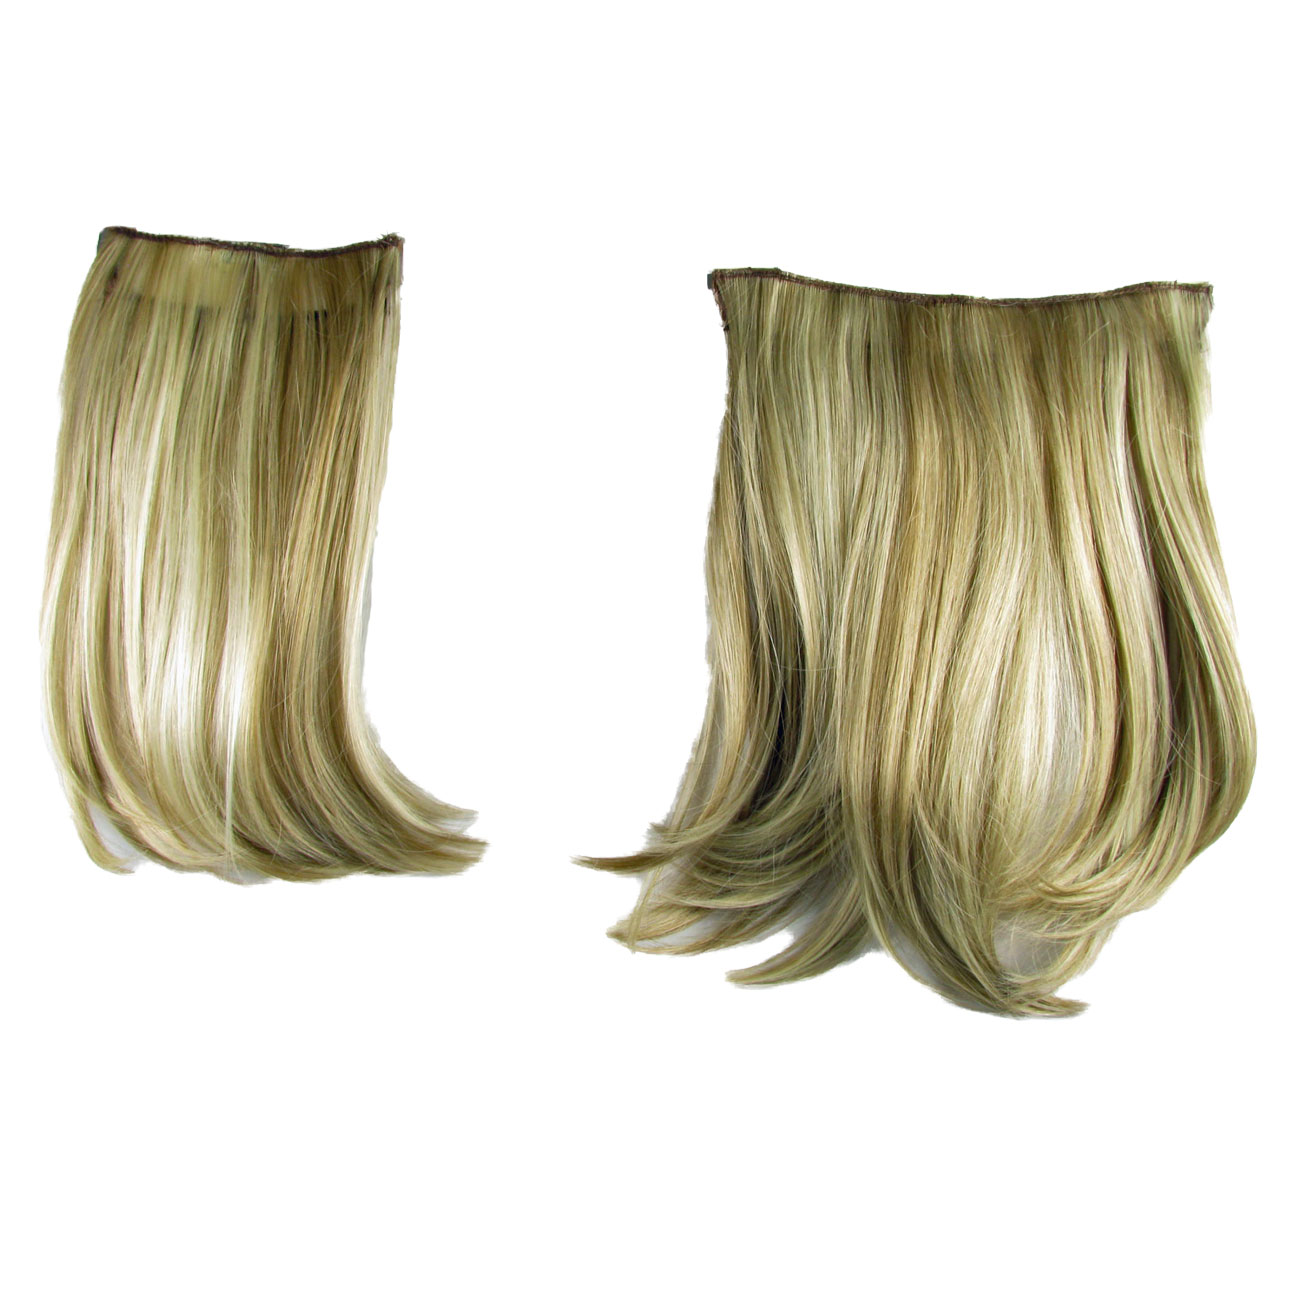 Ken Paves Hairdo 2 Two Piece Clip In Hair Extensions Golden Wheat 16